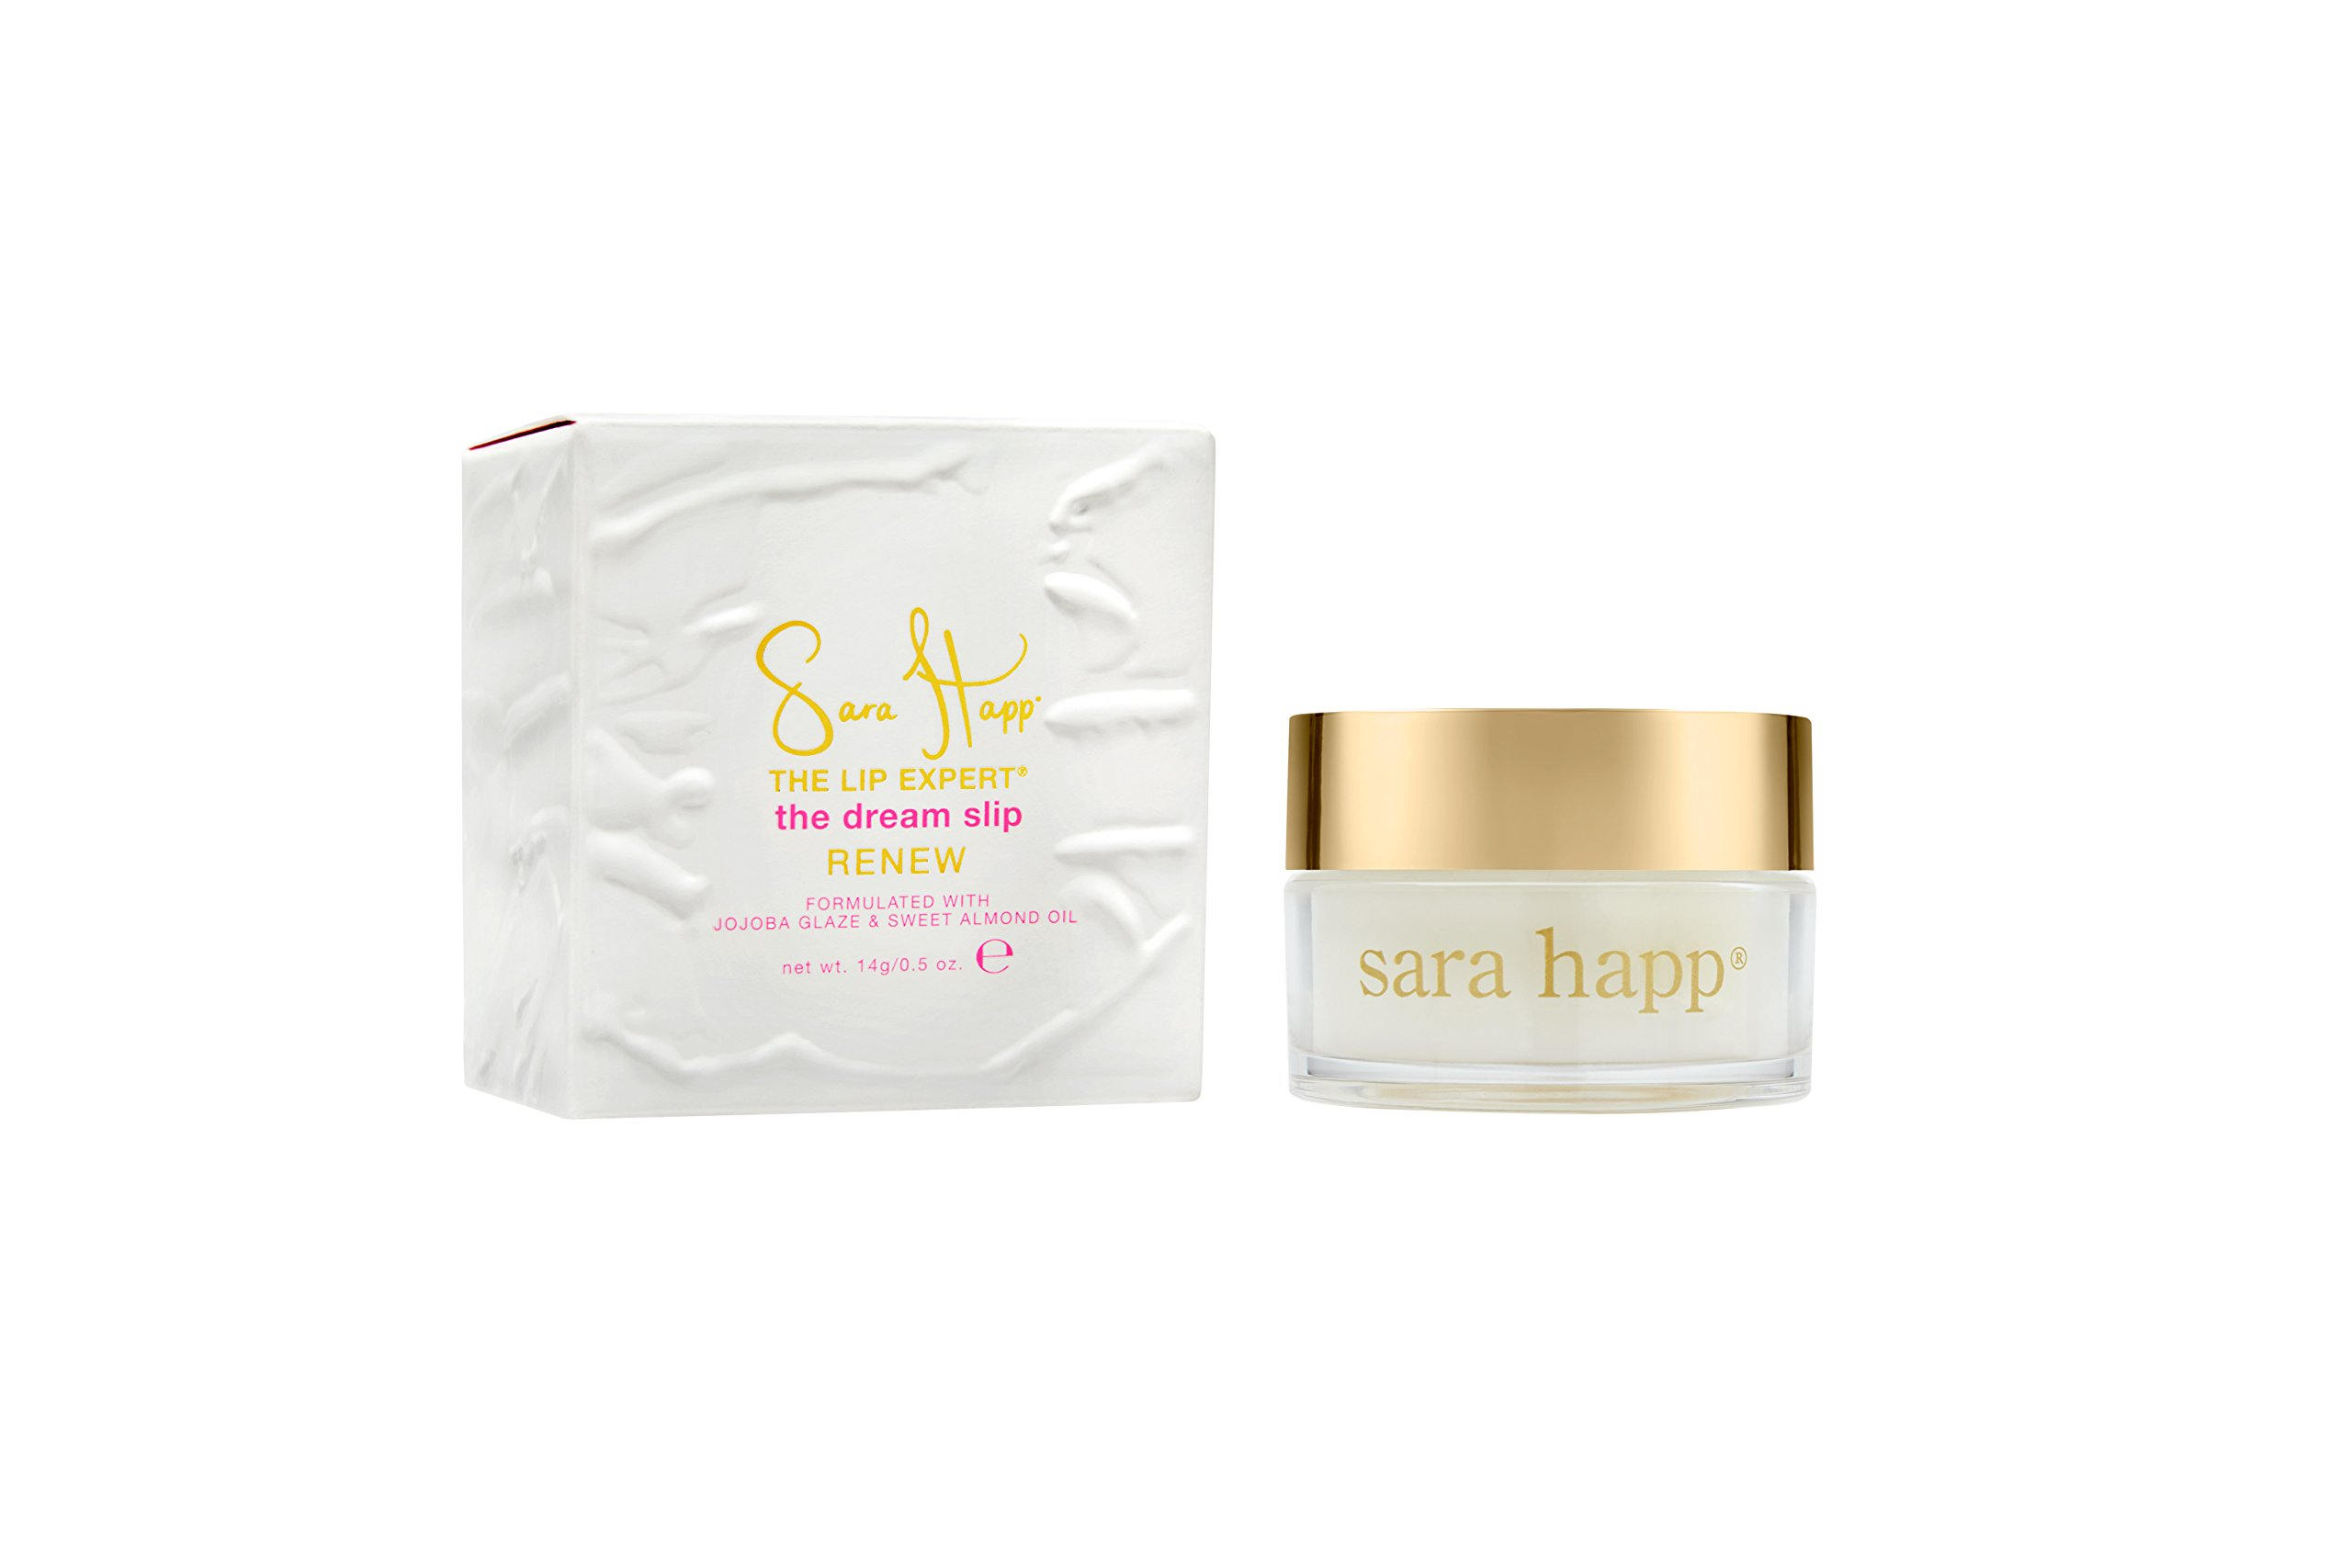 sara happ The Dream Slip, 0.5 oz.